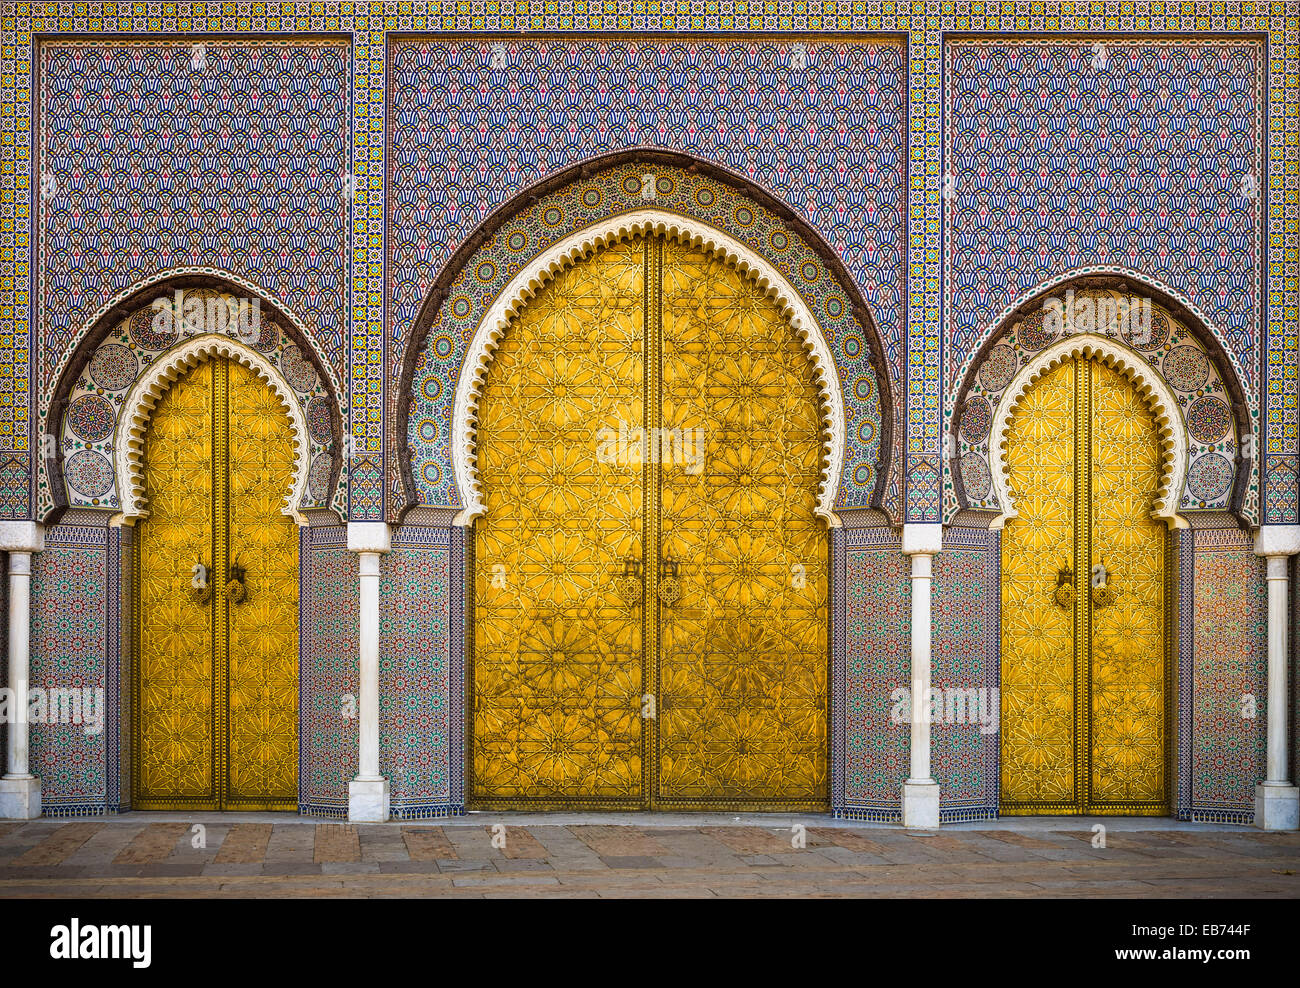 PALACE GOLD DOORS FES FEZ MOROCCO & PALACE GOLD DOORS FES FEZ MOROCCO Stock Photo: 75759615 - Alamy